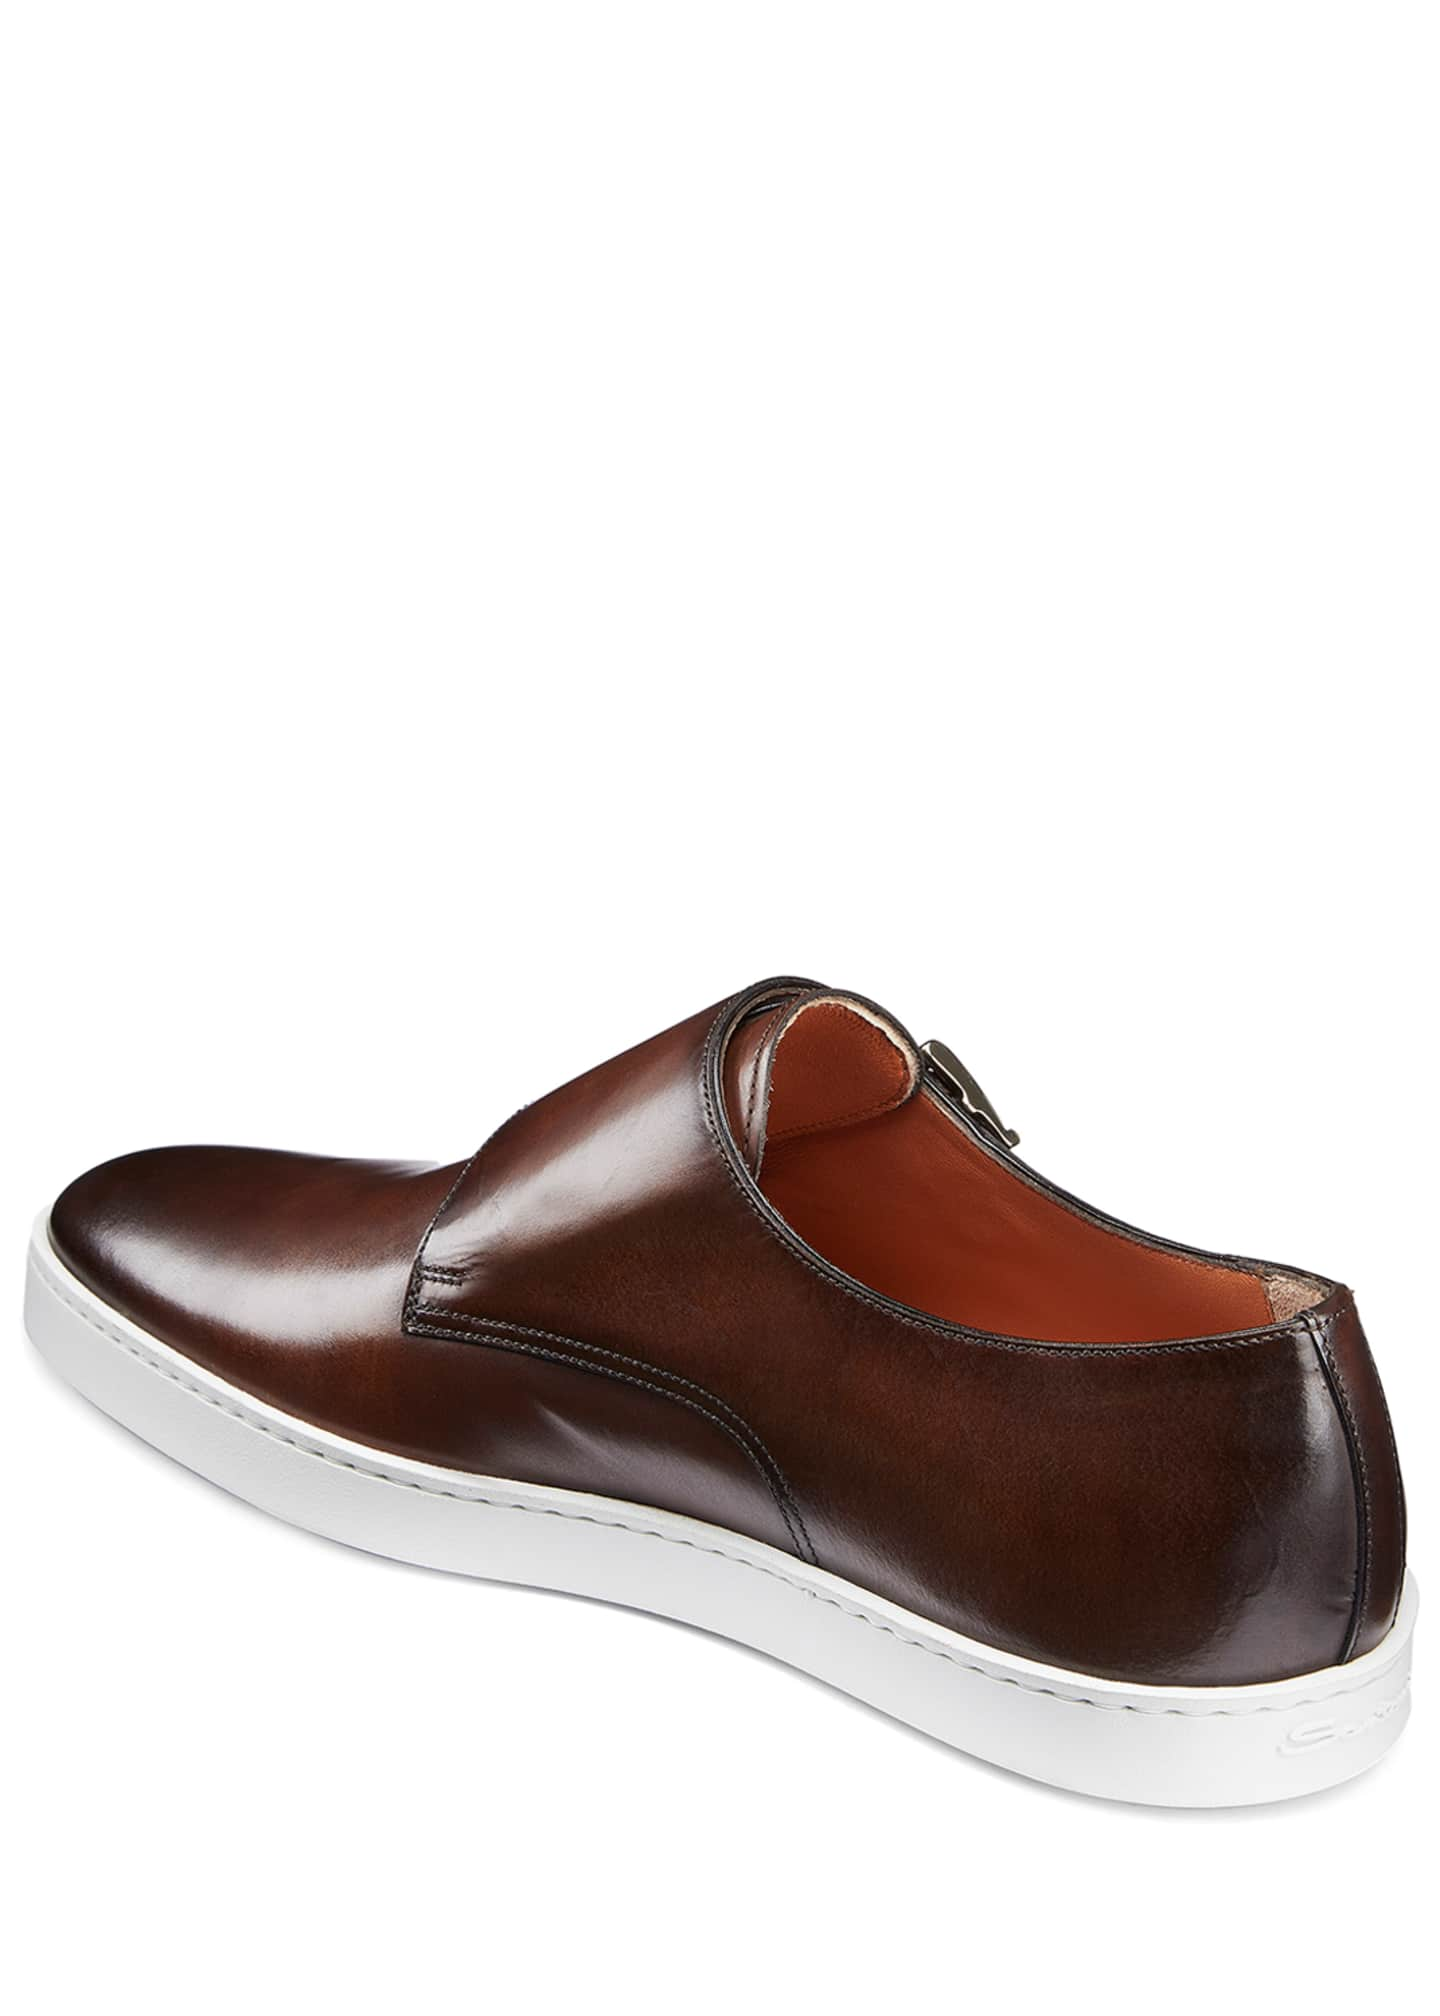 Image 4 of 5: Men's Freemont Double-Monk Leather Sneakers